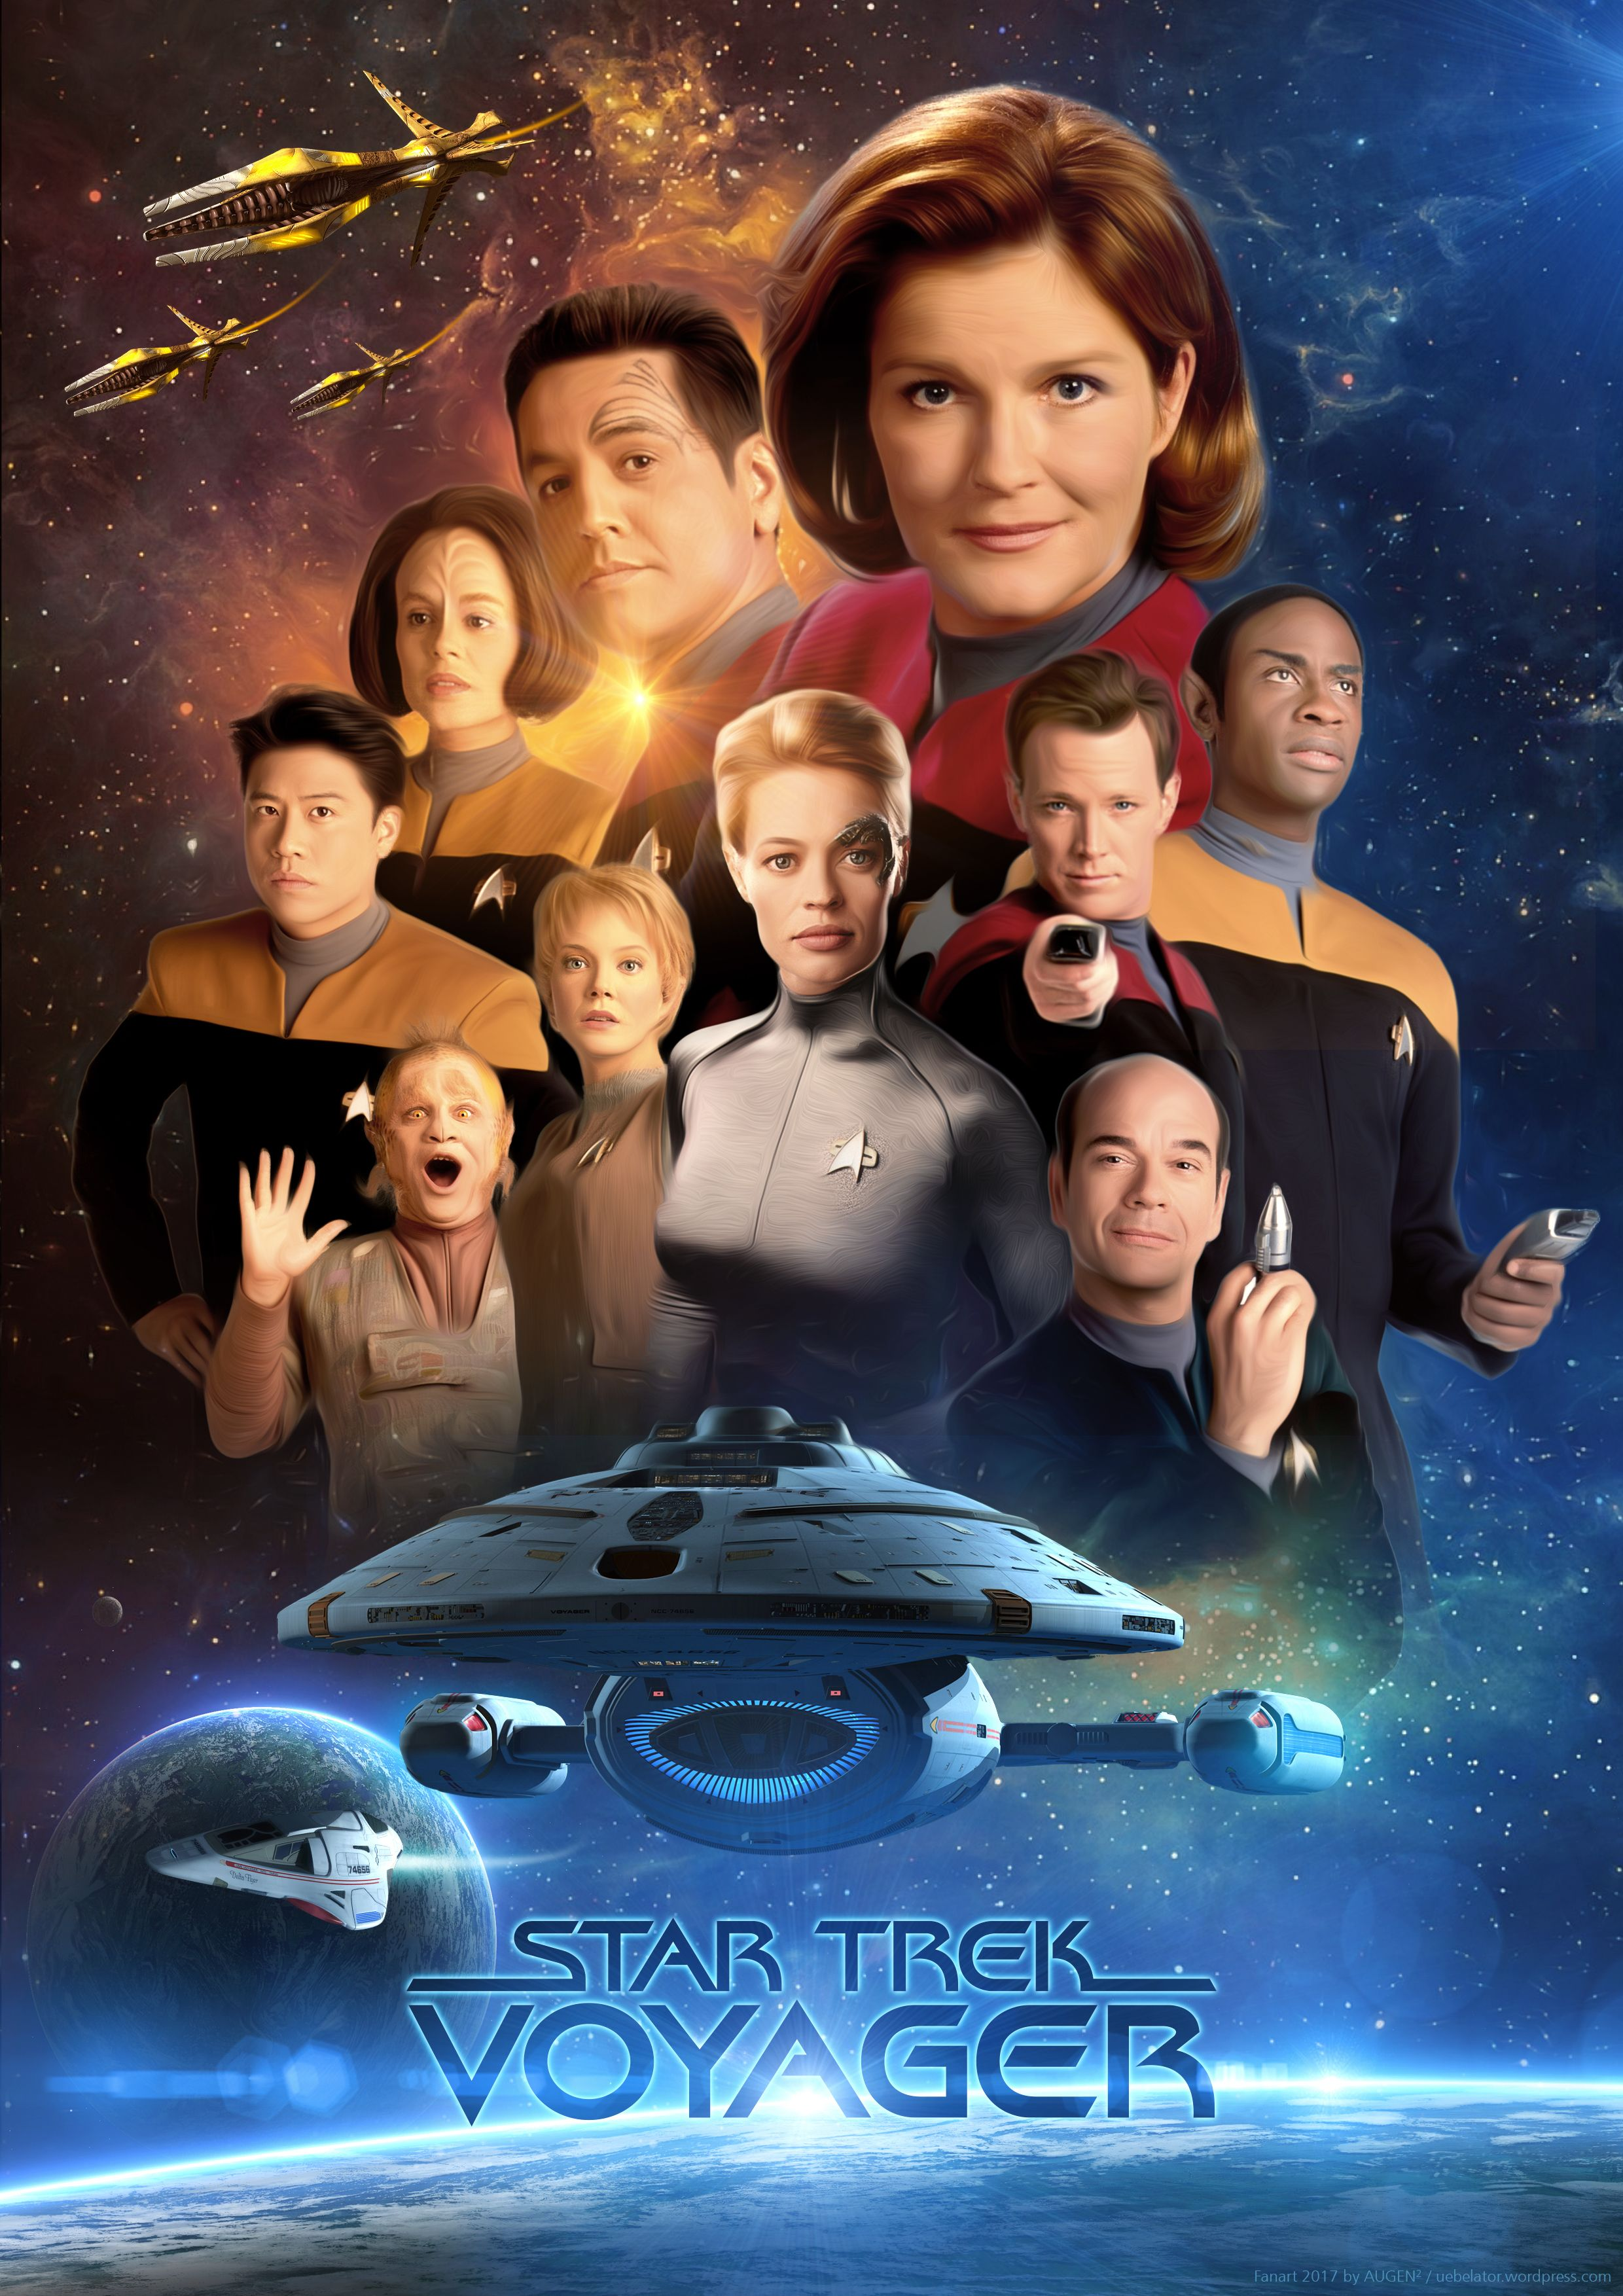 Star Trek Voyager Fanart Poster Fanart Movieposters And More